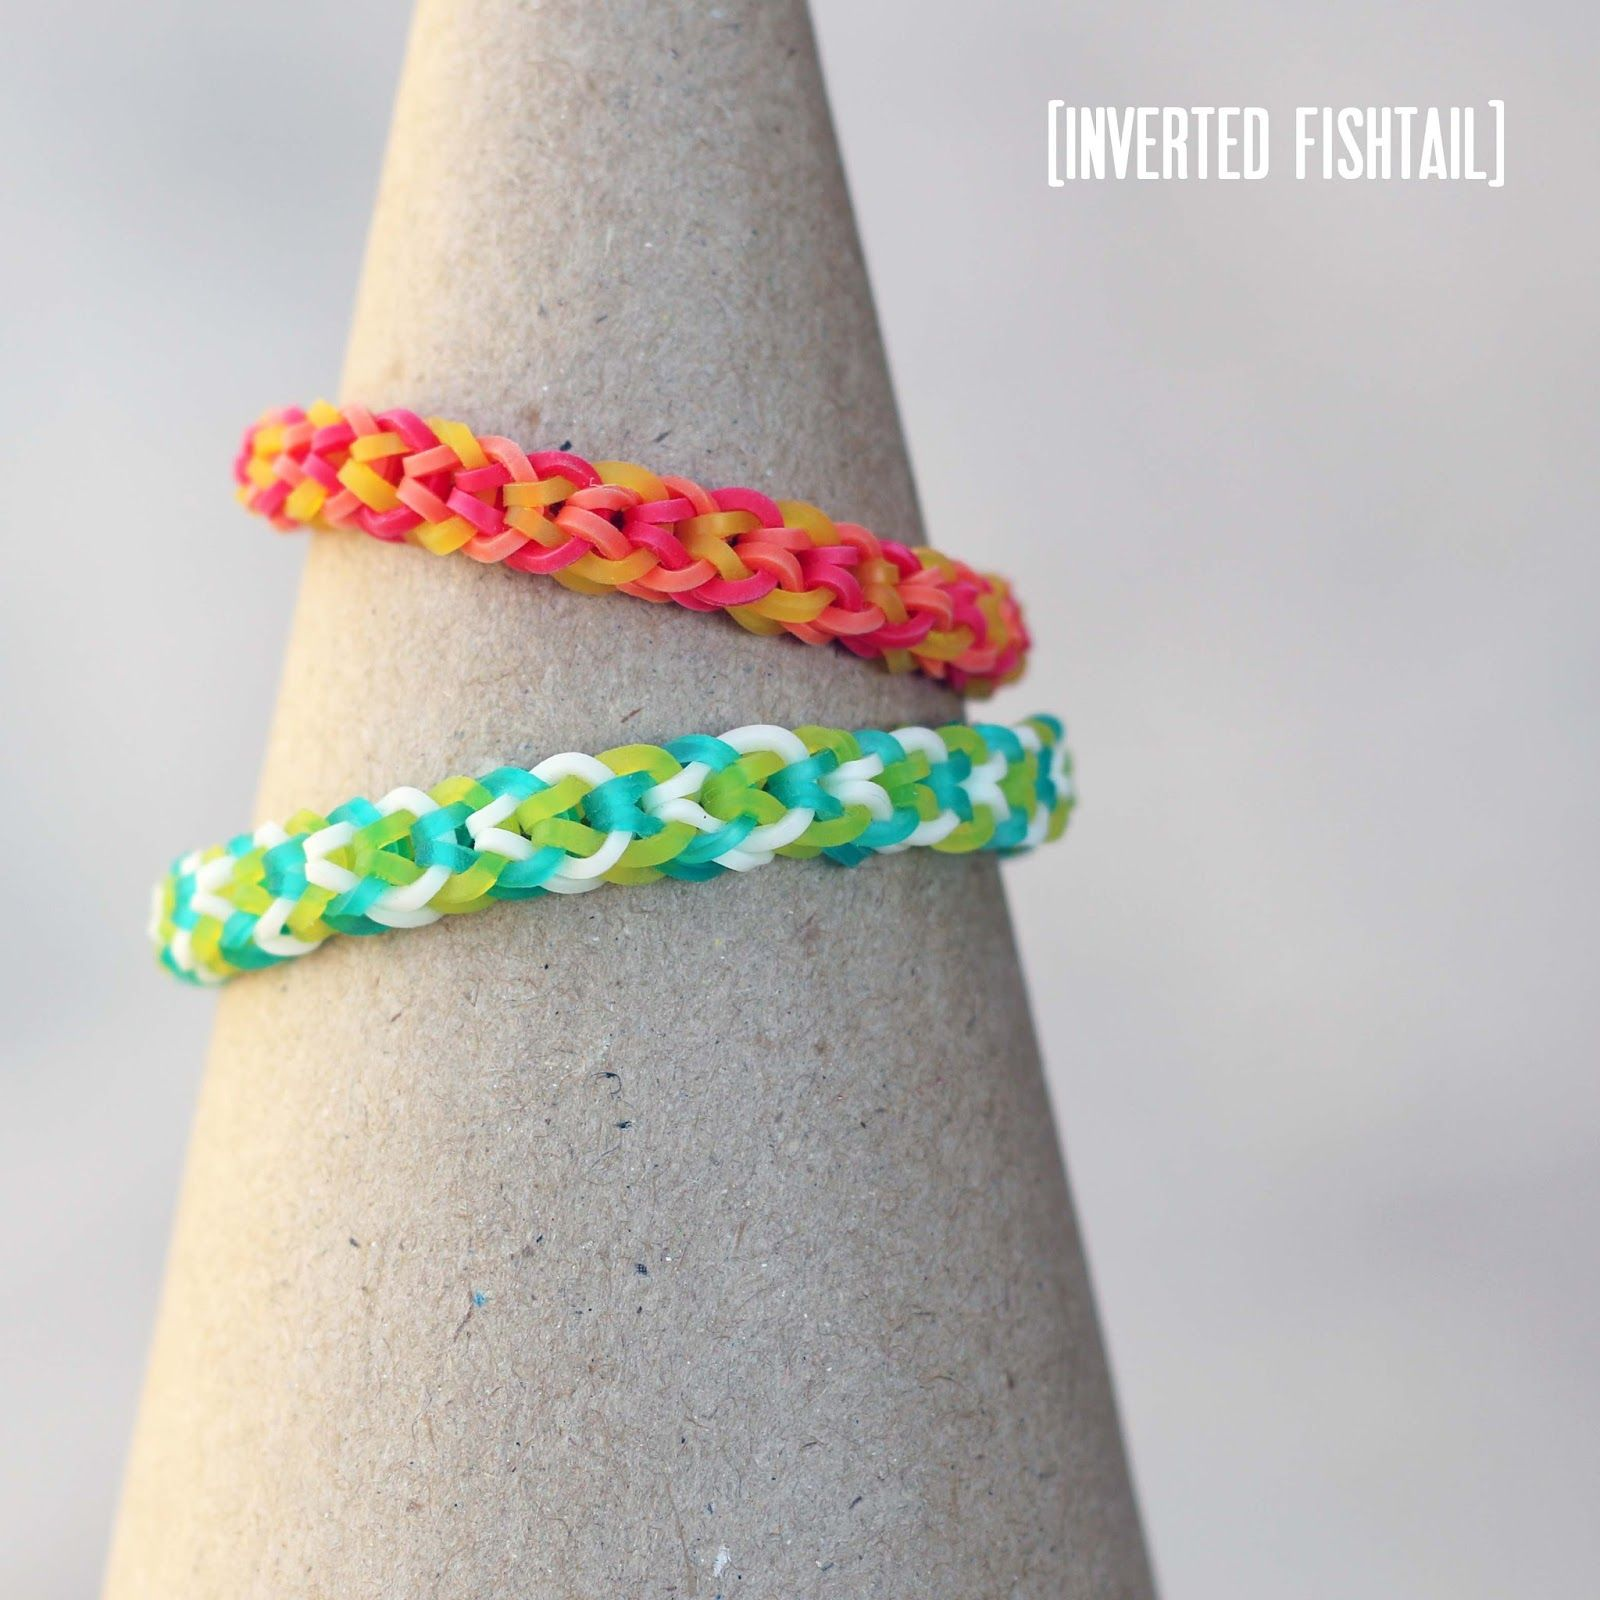 Inverted Fishtail Bracelet [intermediate] - Rainbow Loom video tutorial - http://www.blissbloomblog.com/